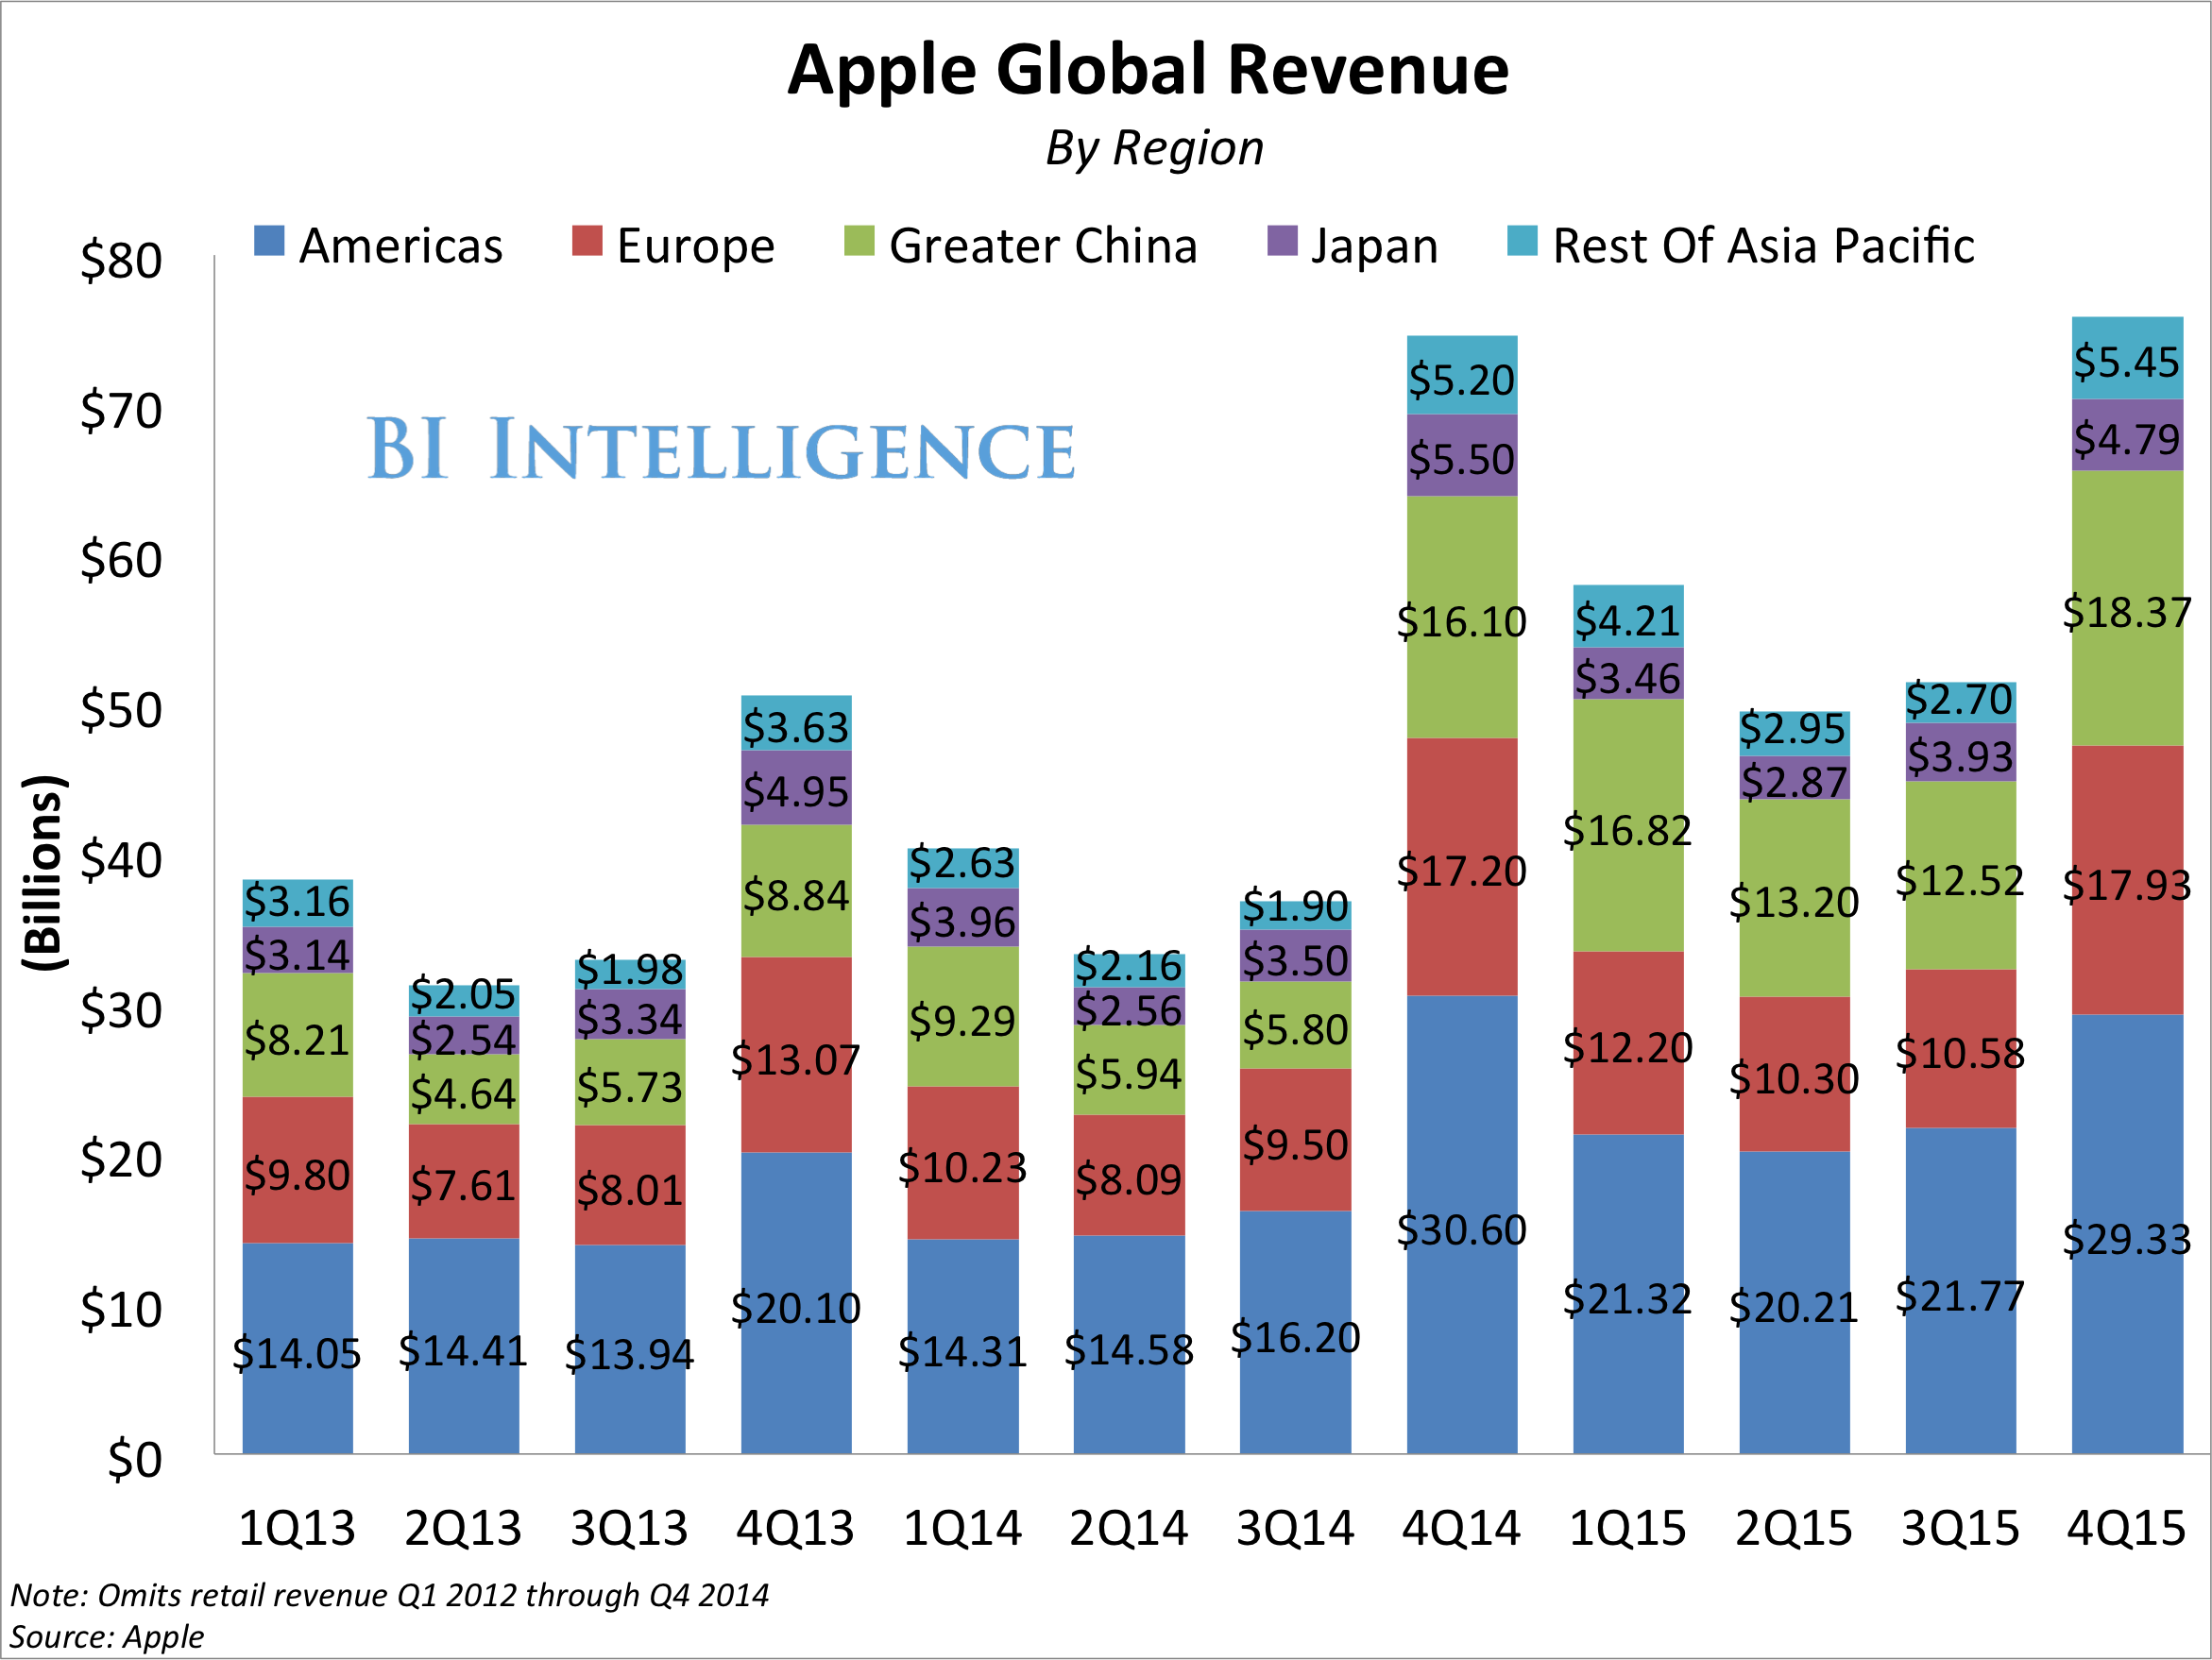 bii apple earnings by region 4Q15 stacked